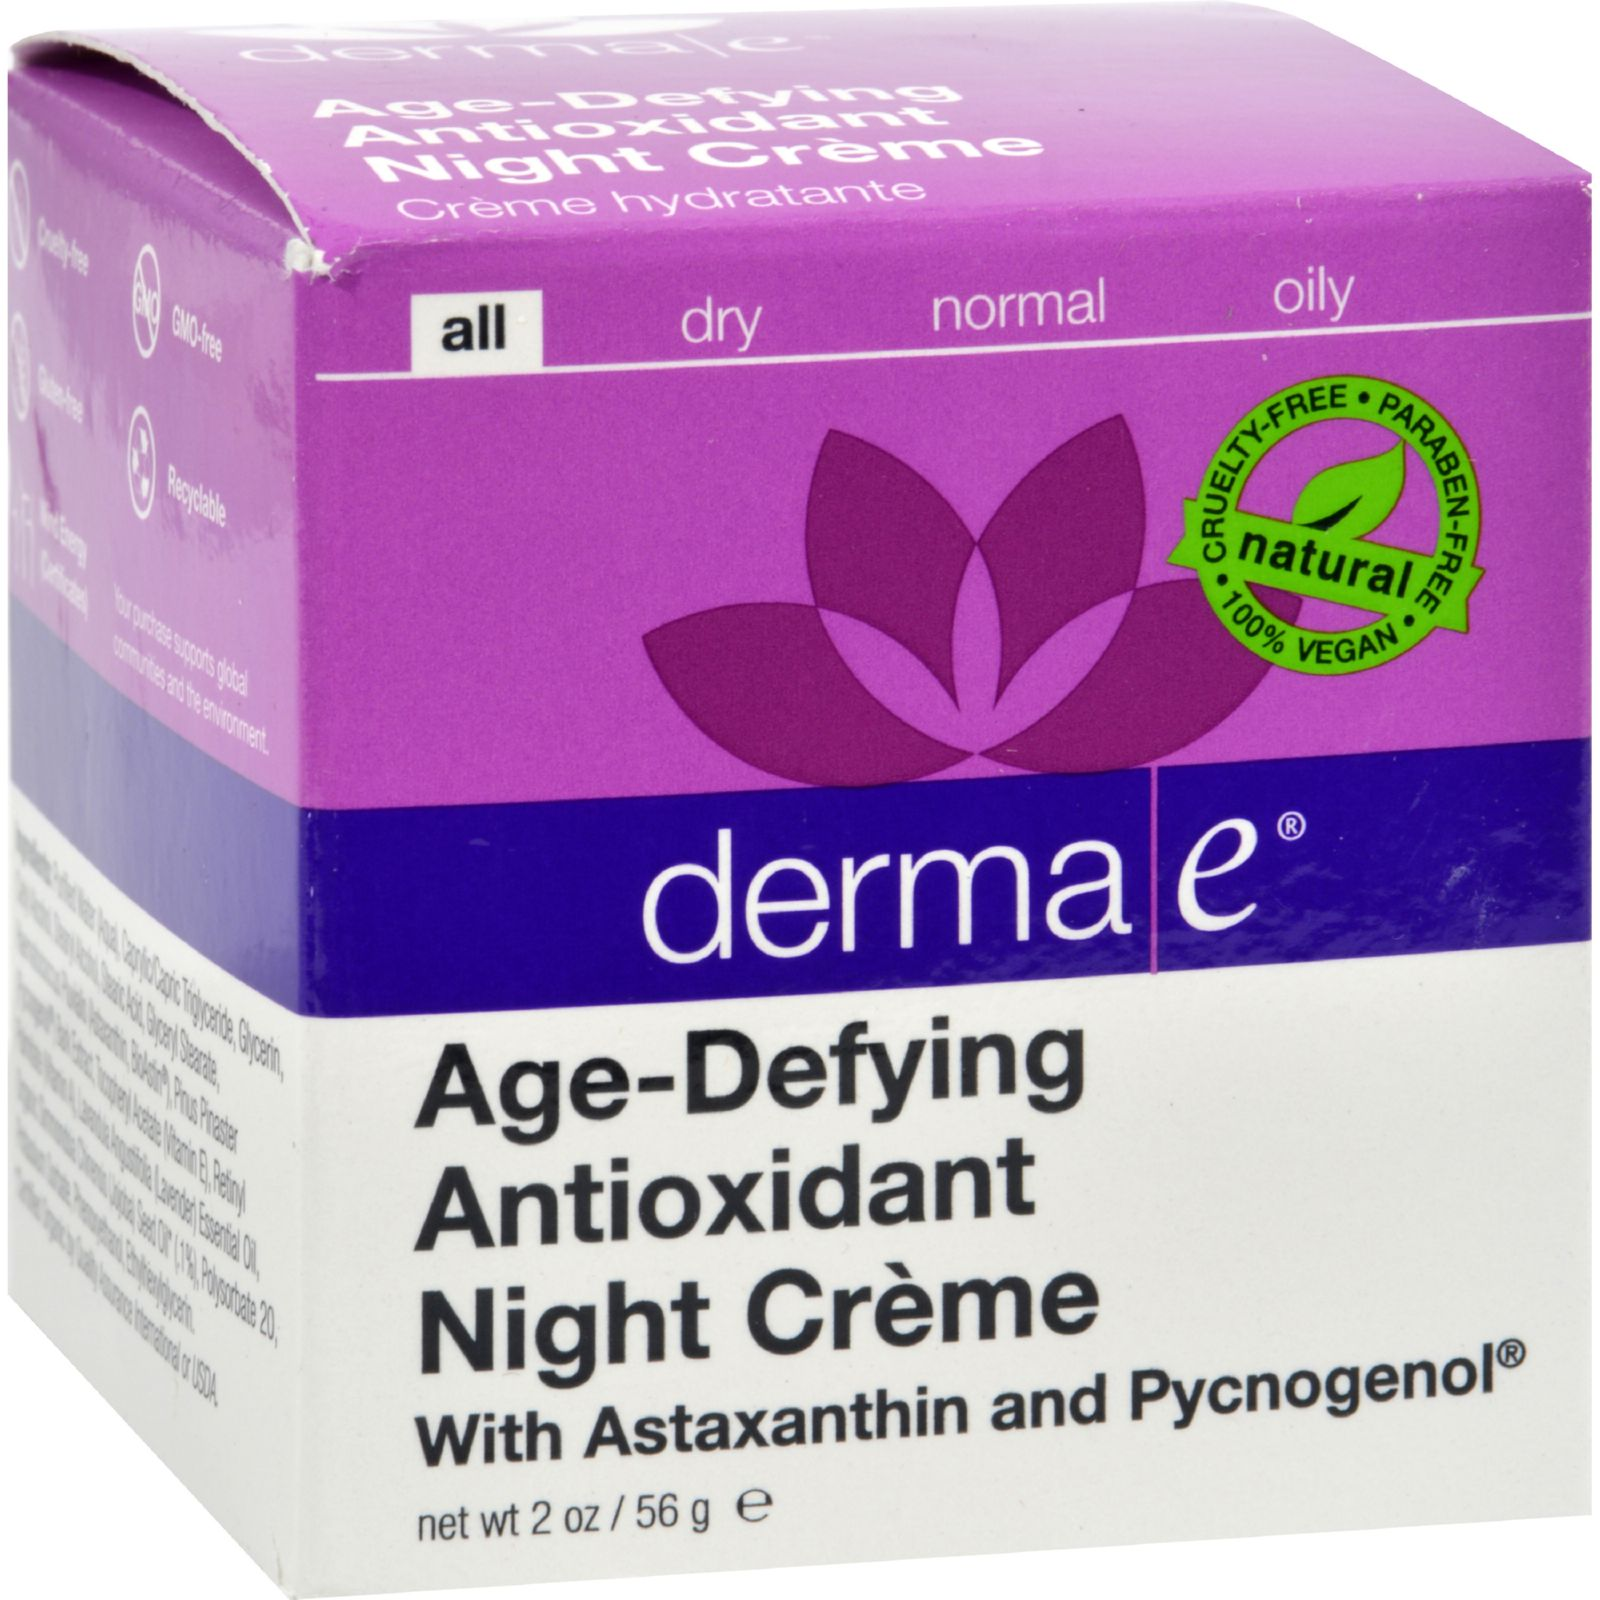 Derma E Age-Defying Night Creme with Astaxanthin and Pycn...